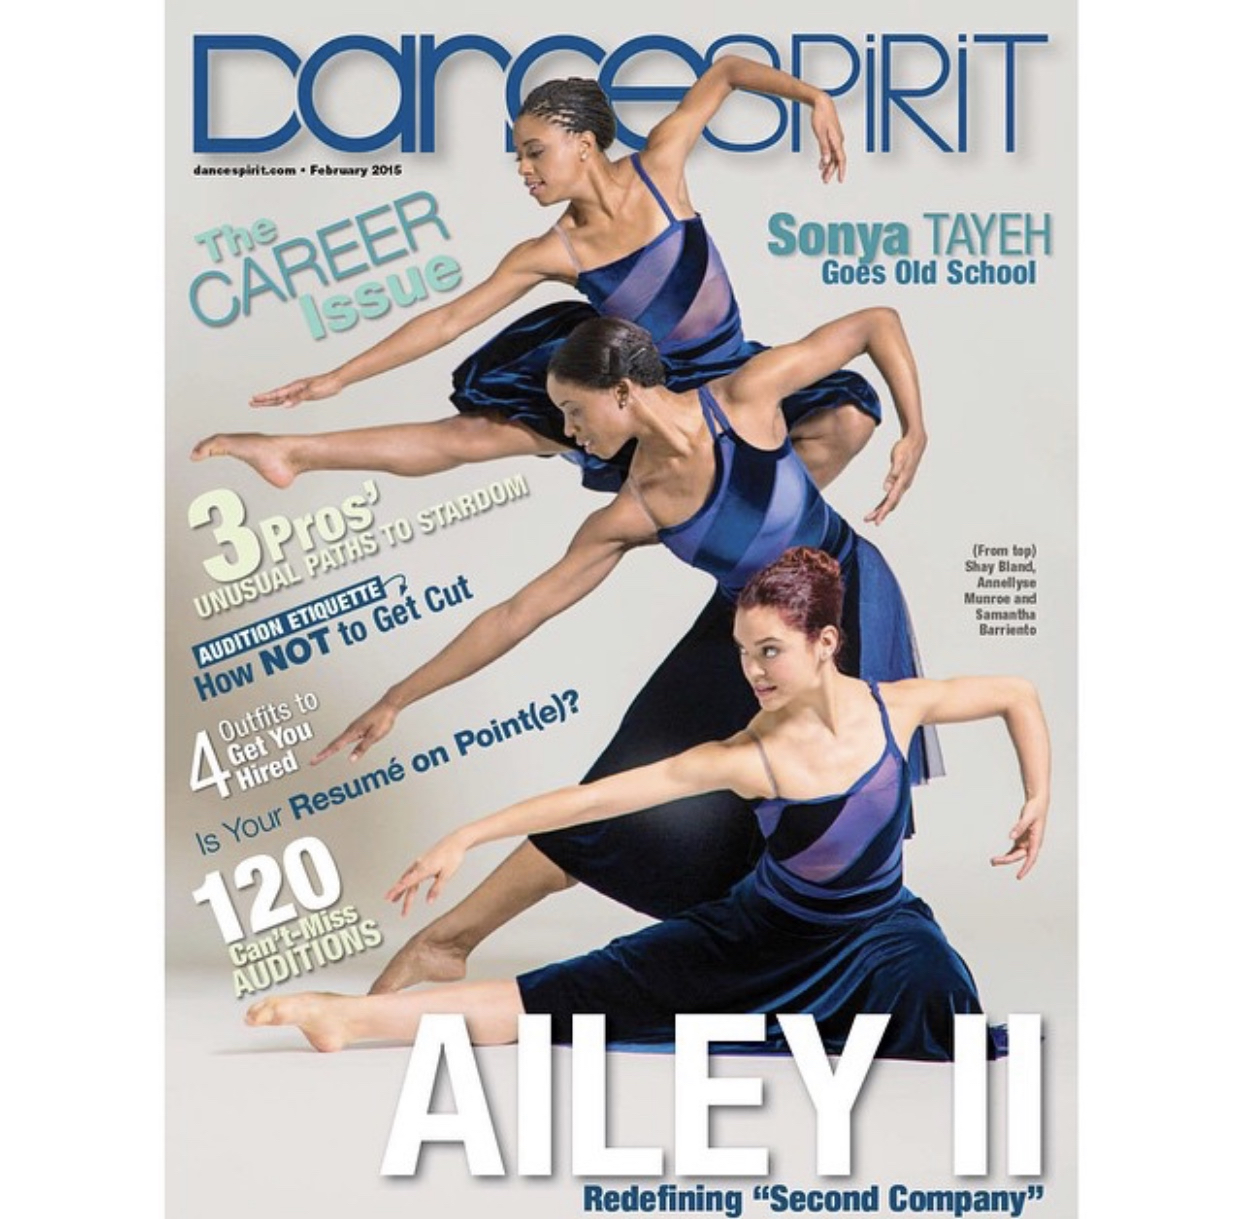 Annellyse's <i>Dance Spirit</i> Magazine cover with fellow Ailey II dancers.